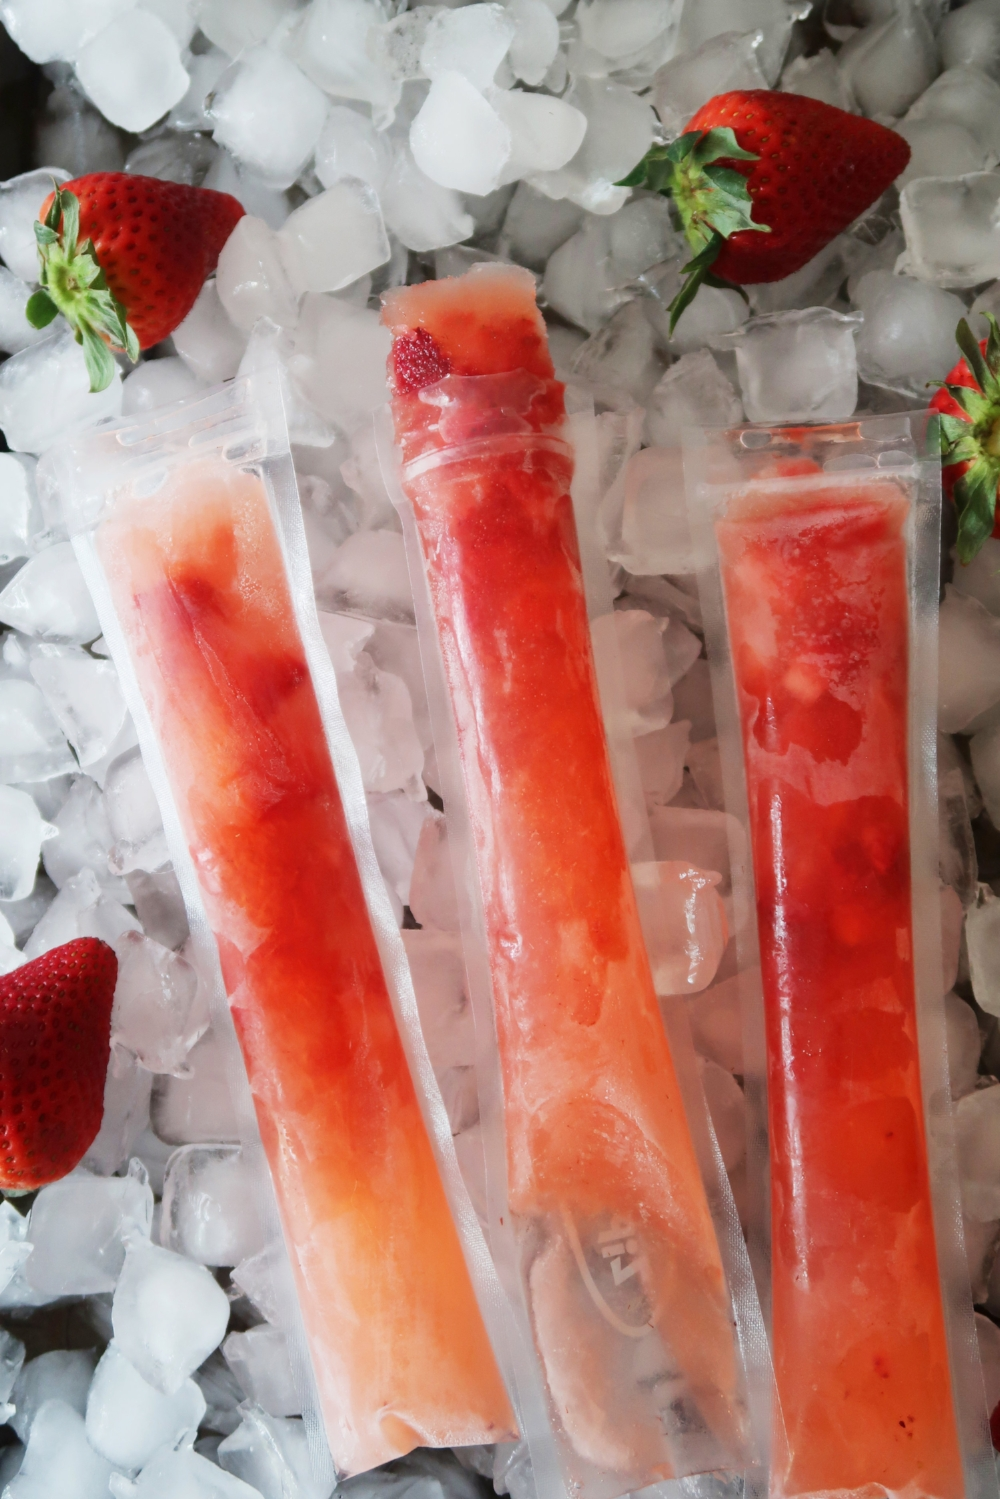 Strawberry Lemonade Vodka Freeze Pops